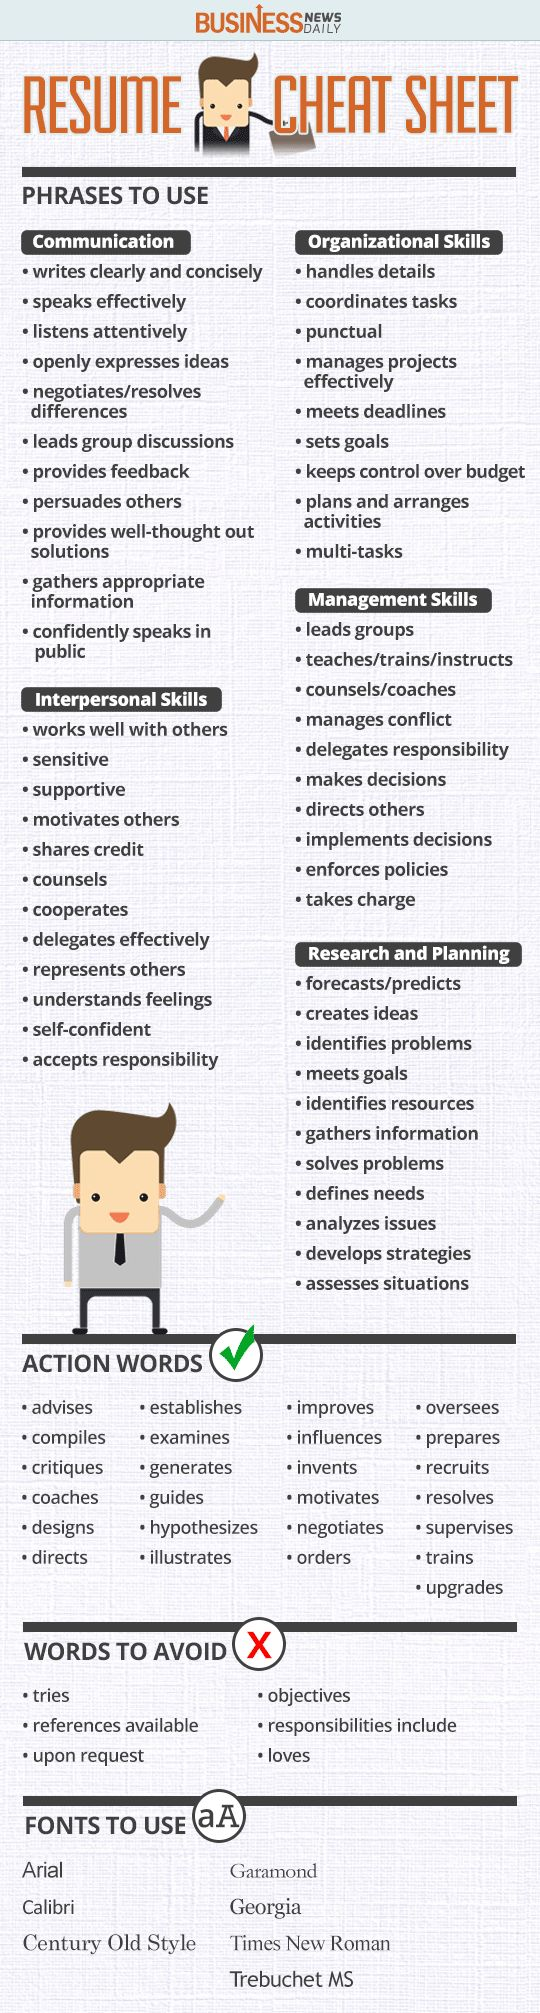 Opposenewapstandardsus  Scenic  Ideas About Resume On Pinterest  Cv Format Resume Cv And  With Lovely Resume Cheat Sheet Infographic Andrews Almost Done With A Complete Unit On Employment Which With Awesome Student Cover Letter For Resume Also Software Sales Resume In Addition Does Word Have A Resume Template And General Warehouse Worker Resume As Well As Manual Tester Resume Additionally Senior Resume From Pinterestcom With Opposenewapstandardsus  Lovely  Ideas About Resume On Pinterest  Cv Format Resume Cv And  With Awesome Resume Cheat Sheet Infographic Andrews Almost Done With A Complete Unit On Employment Which And Scenic Student Cover Letter For Resume Also Software Sales Resume In Addition Does Word Have A Resume Template From Pinterestcom